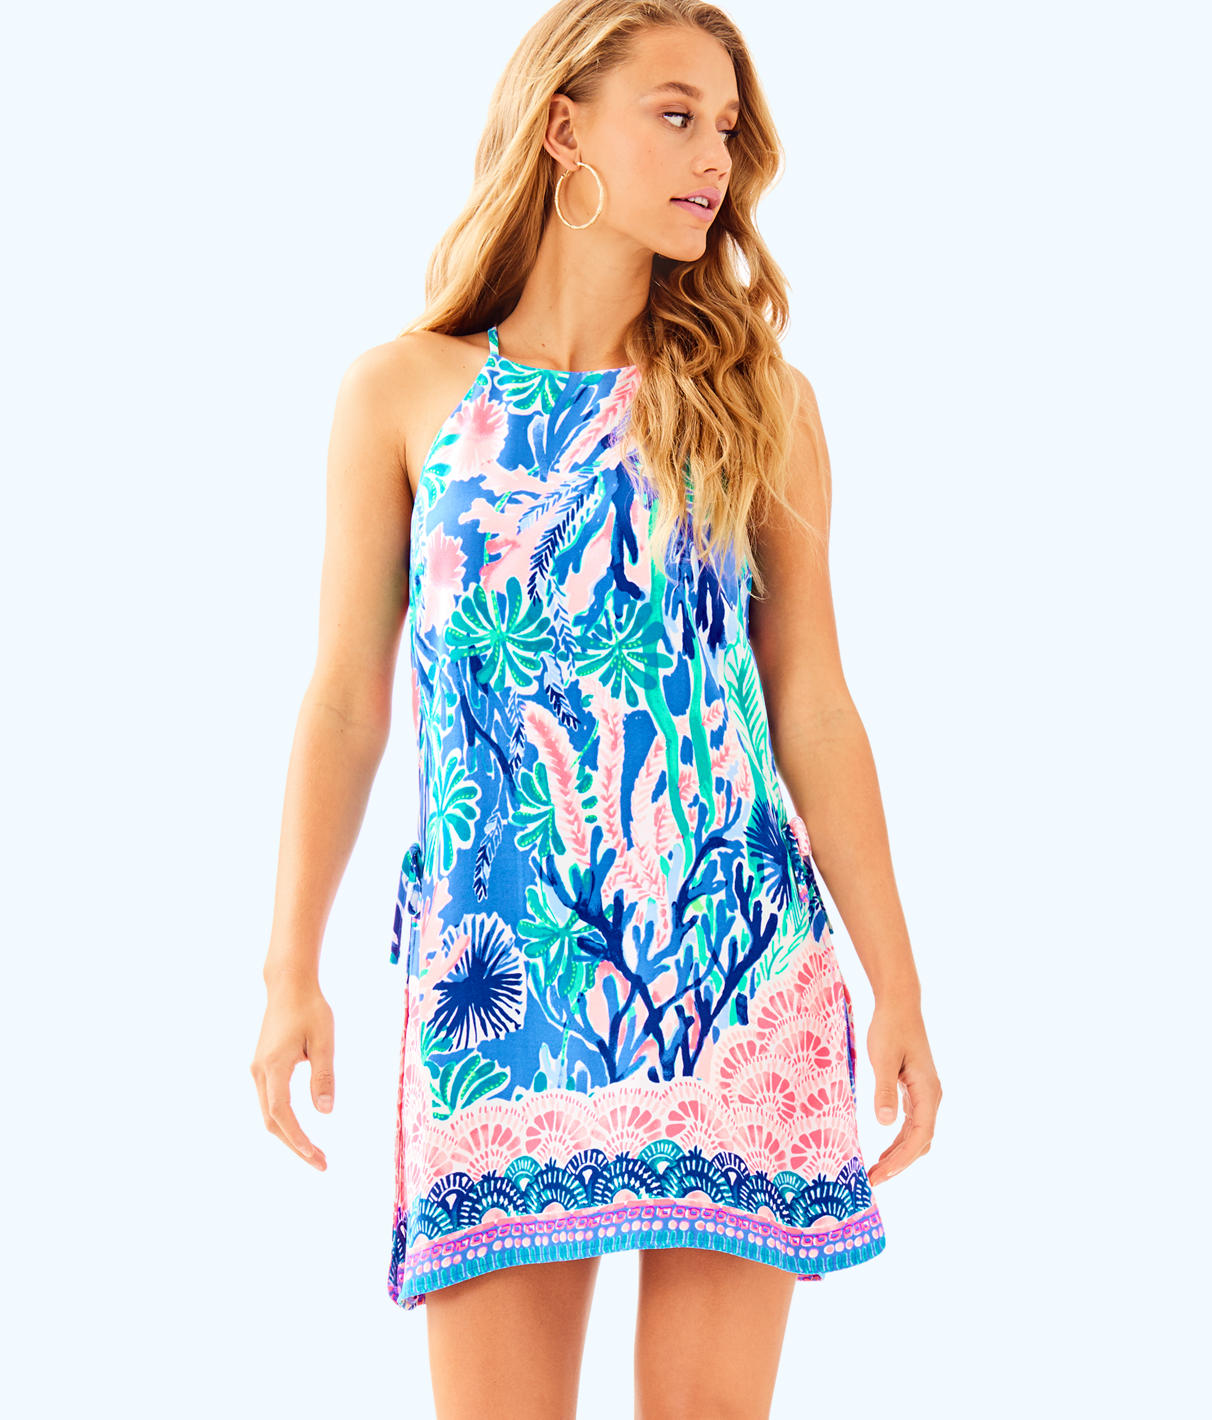 Lilly Pulitzer Lilly Pulitzer Womens Pearl Romper